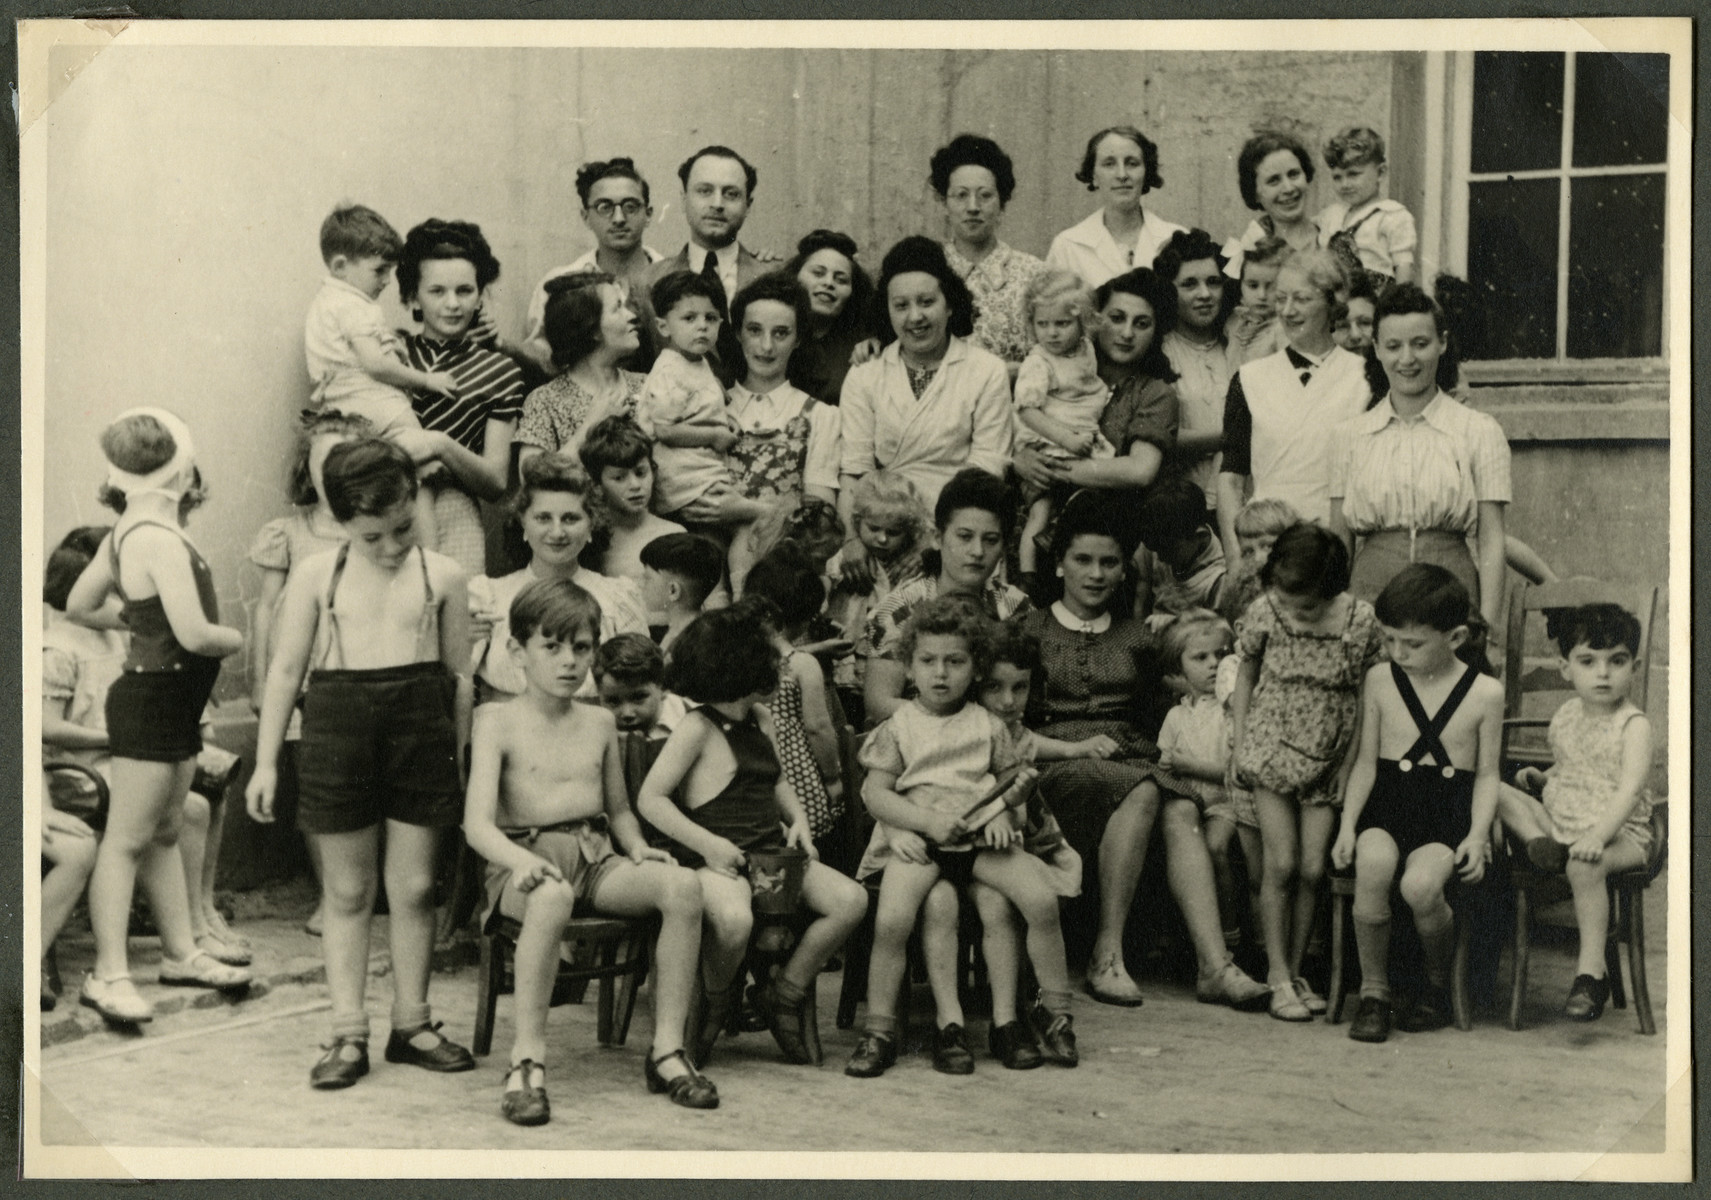 Group portrait of the young children in one of the children's homes organized by Fela Perelman [probably Nos Petits].